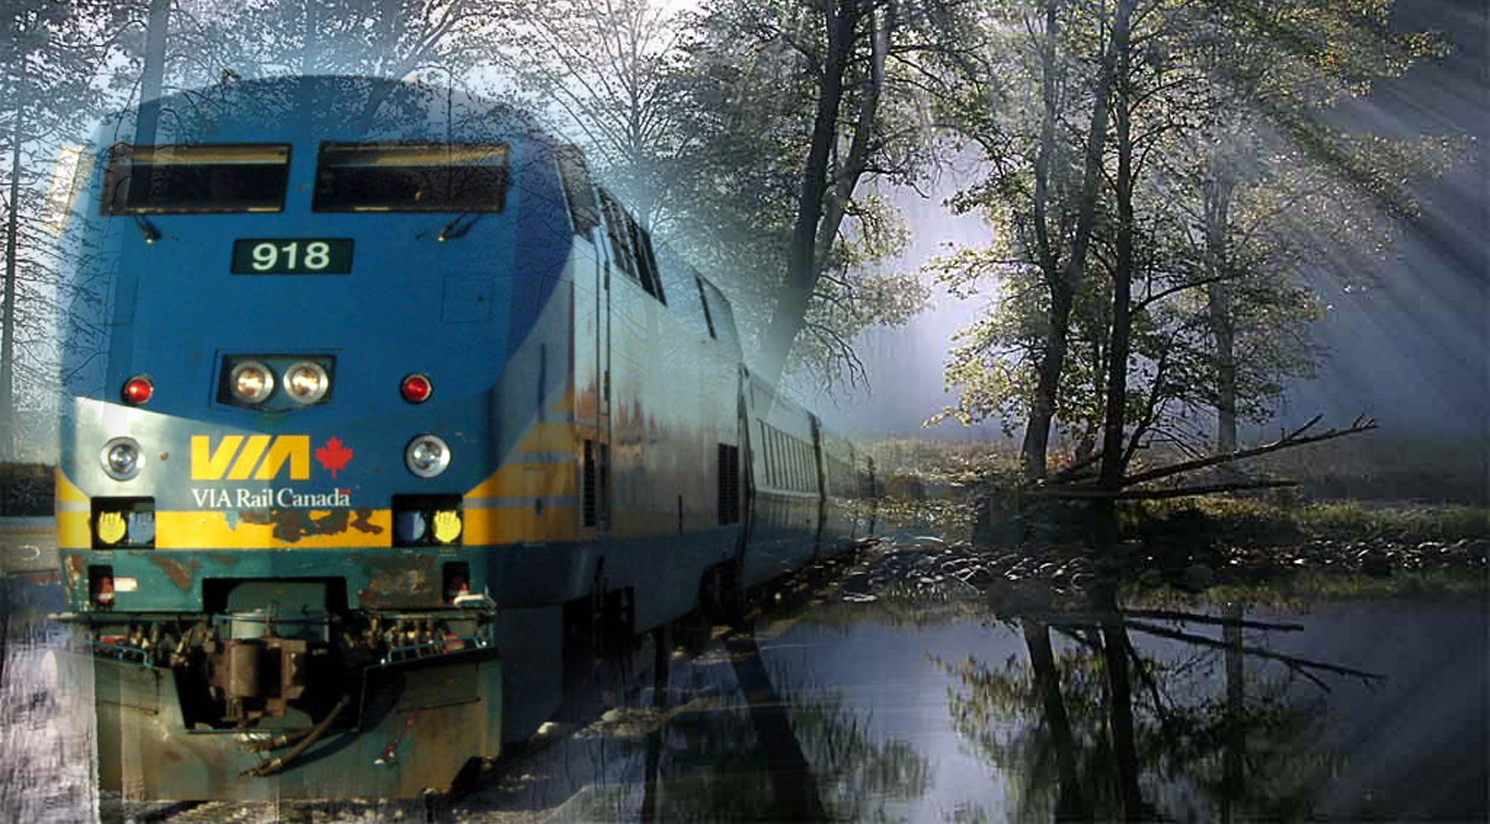 Fleet Renewal Consulting Services for VIA Rail